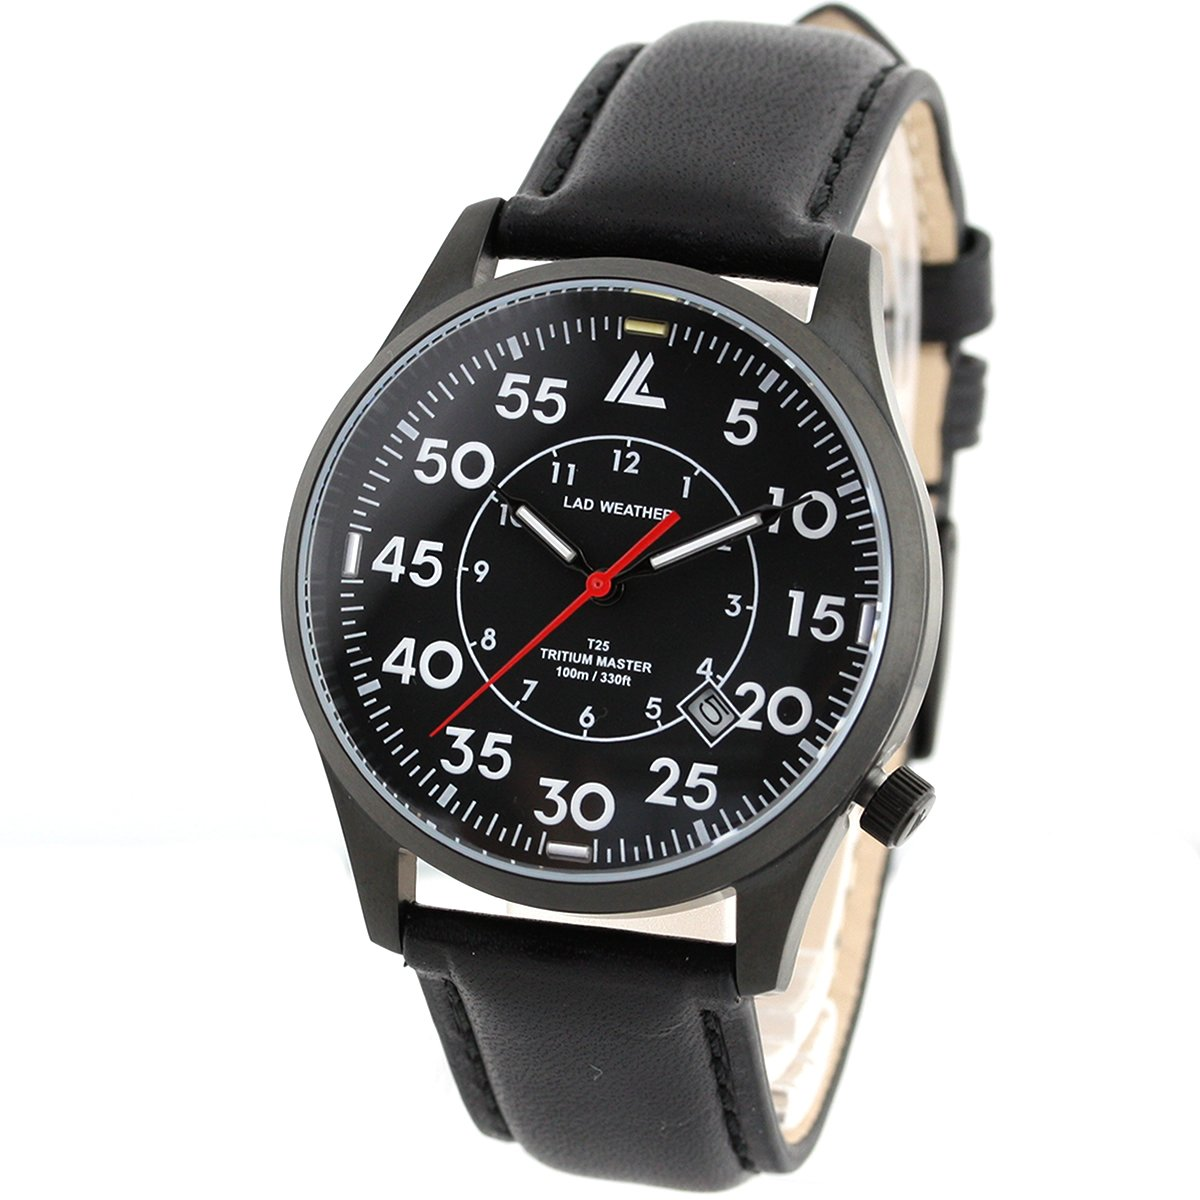 [LAD WEATHER] Swiss Tritium watch / Military Design Night time Outdoor activities by LAD WEATHER